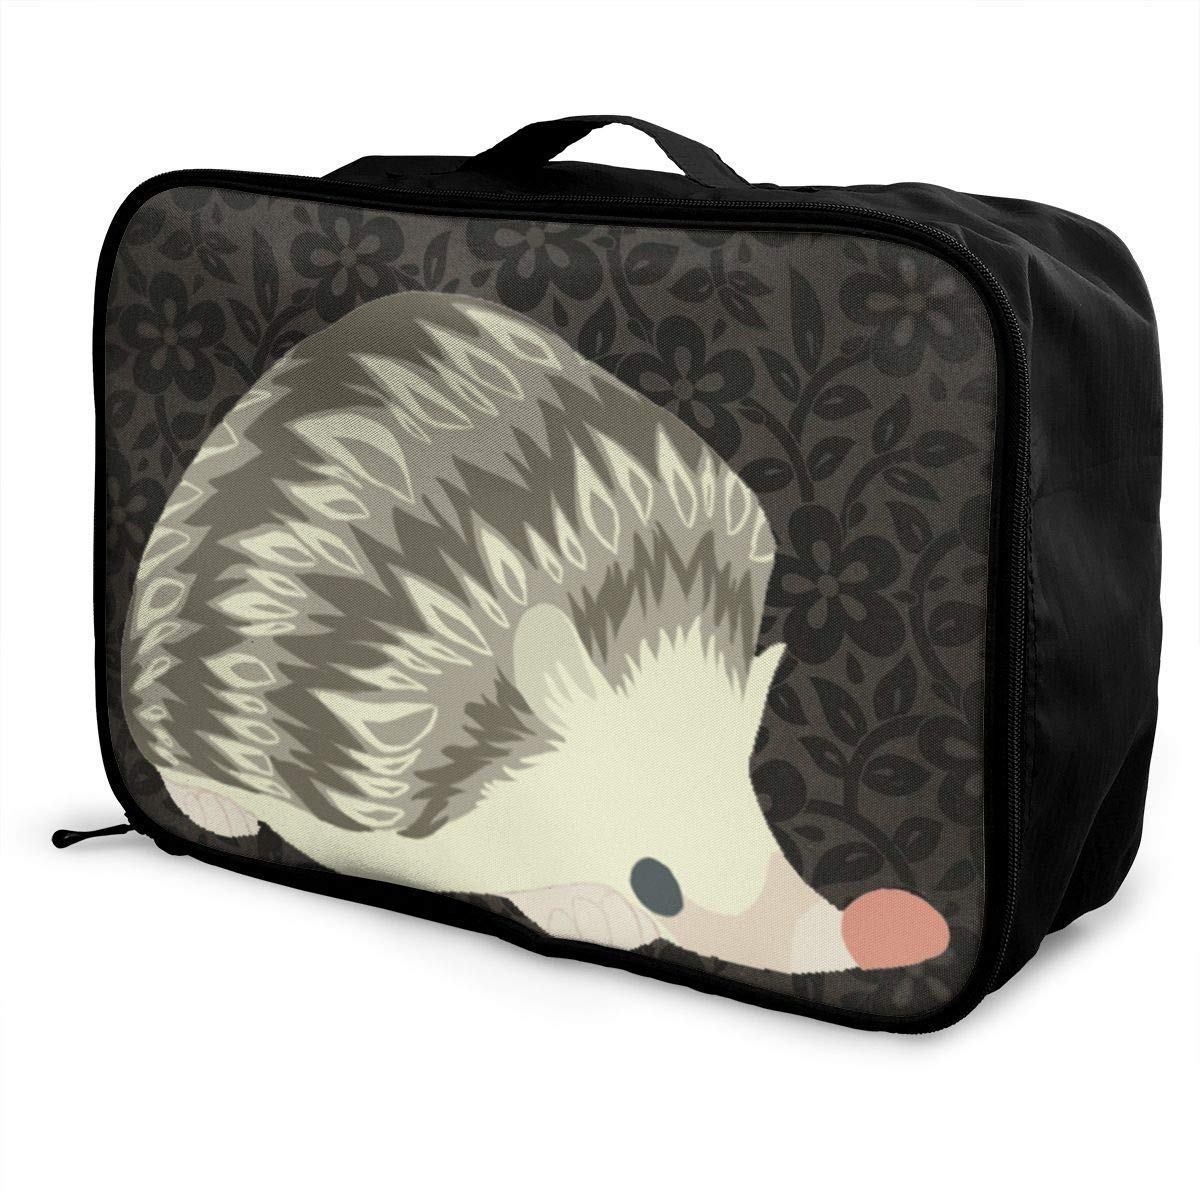 JTRVW Luggage Bags for Travel Portable Luggage Duffel Bag Cute Hedgehog Travel Bags Carry-on in Trolley Handle